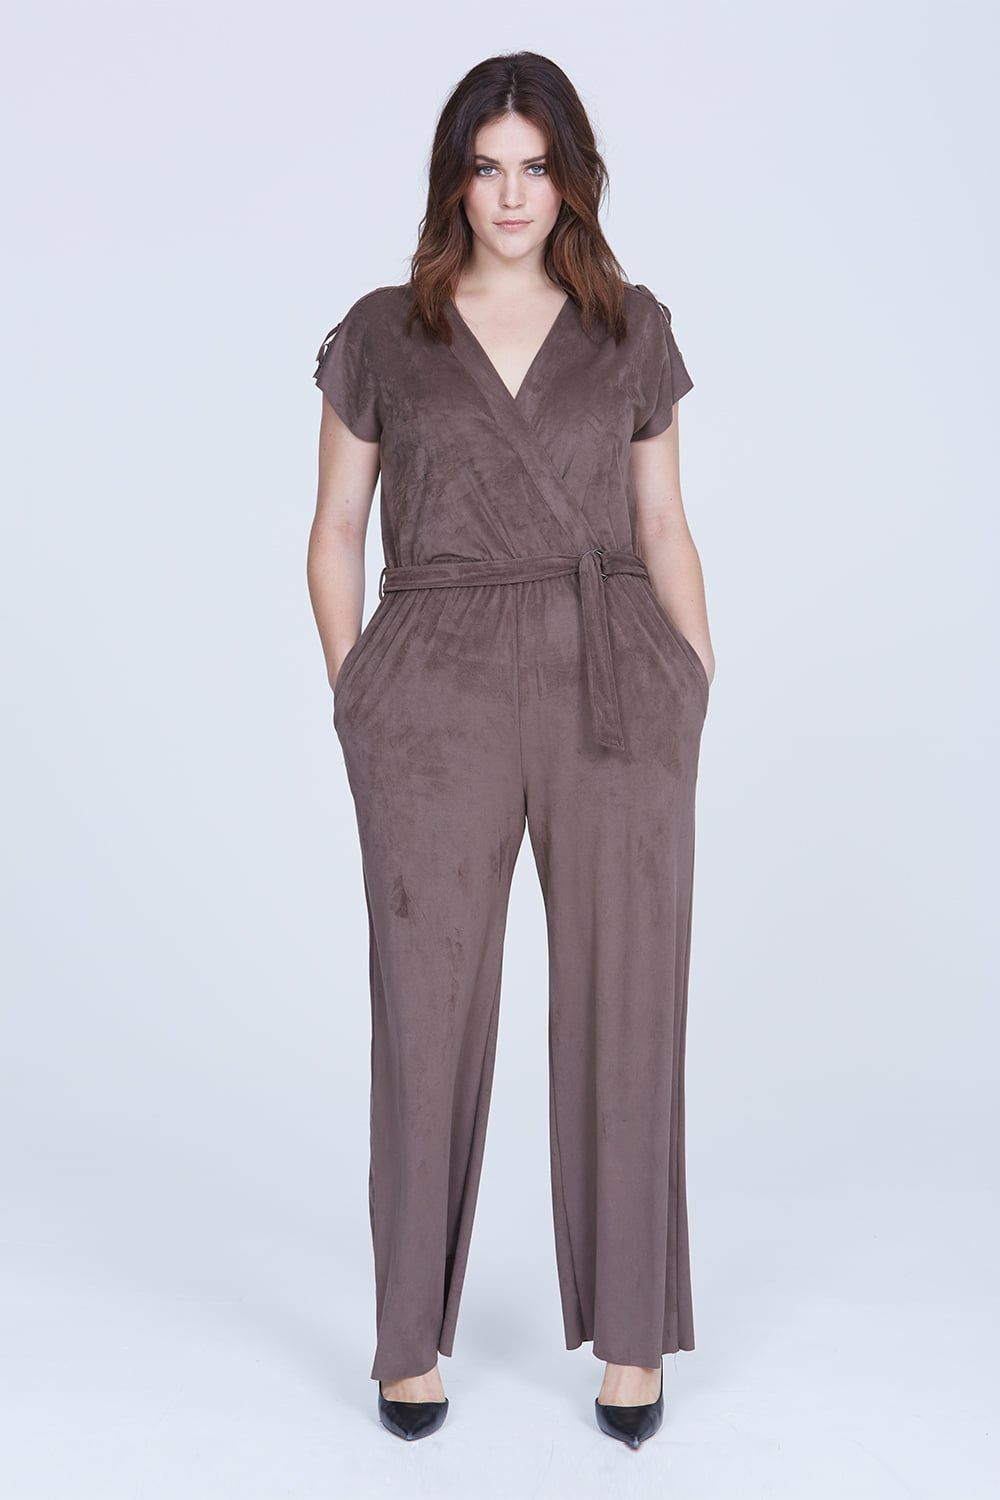 82f58a9c856 Where Can I Find  A Good Jumpsuit  - Racked